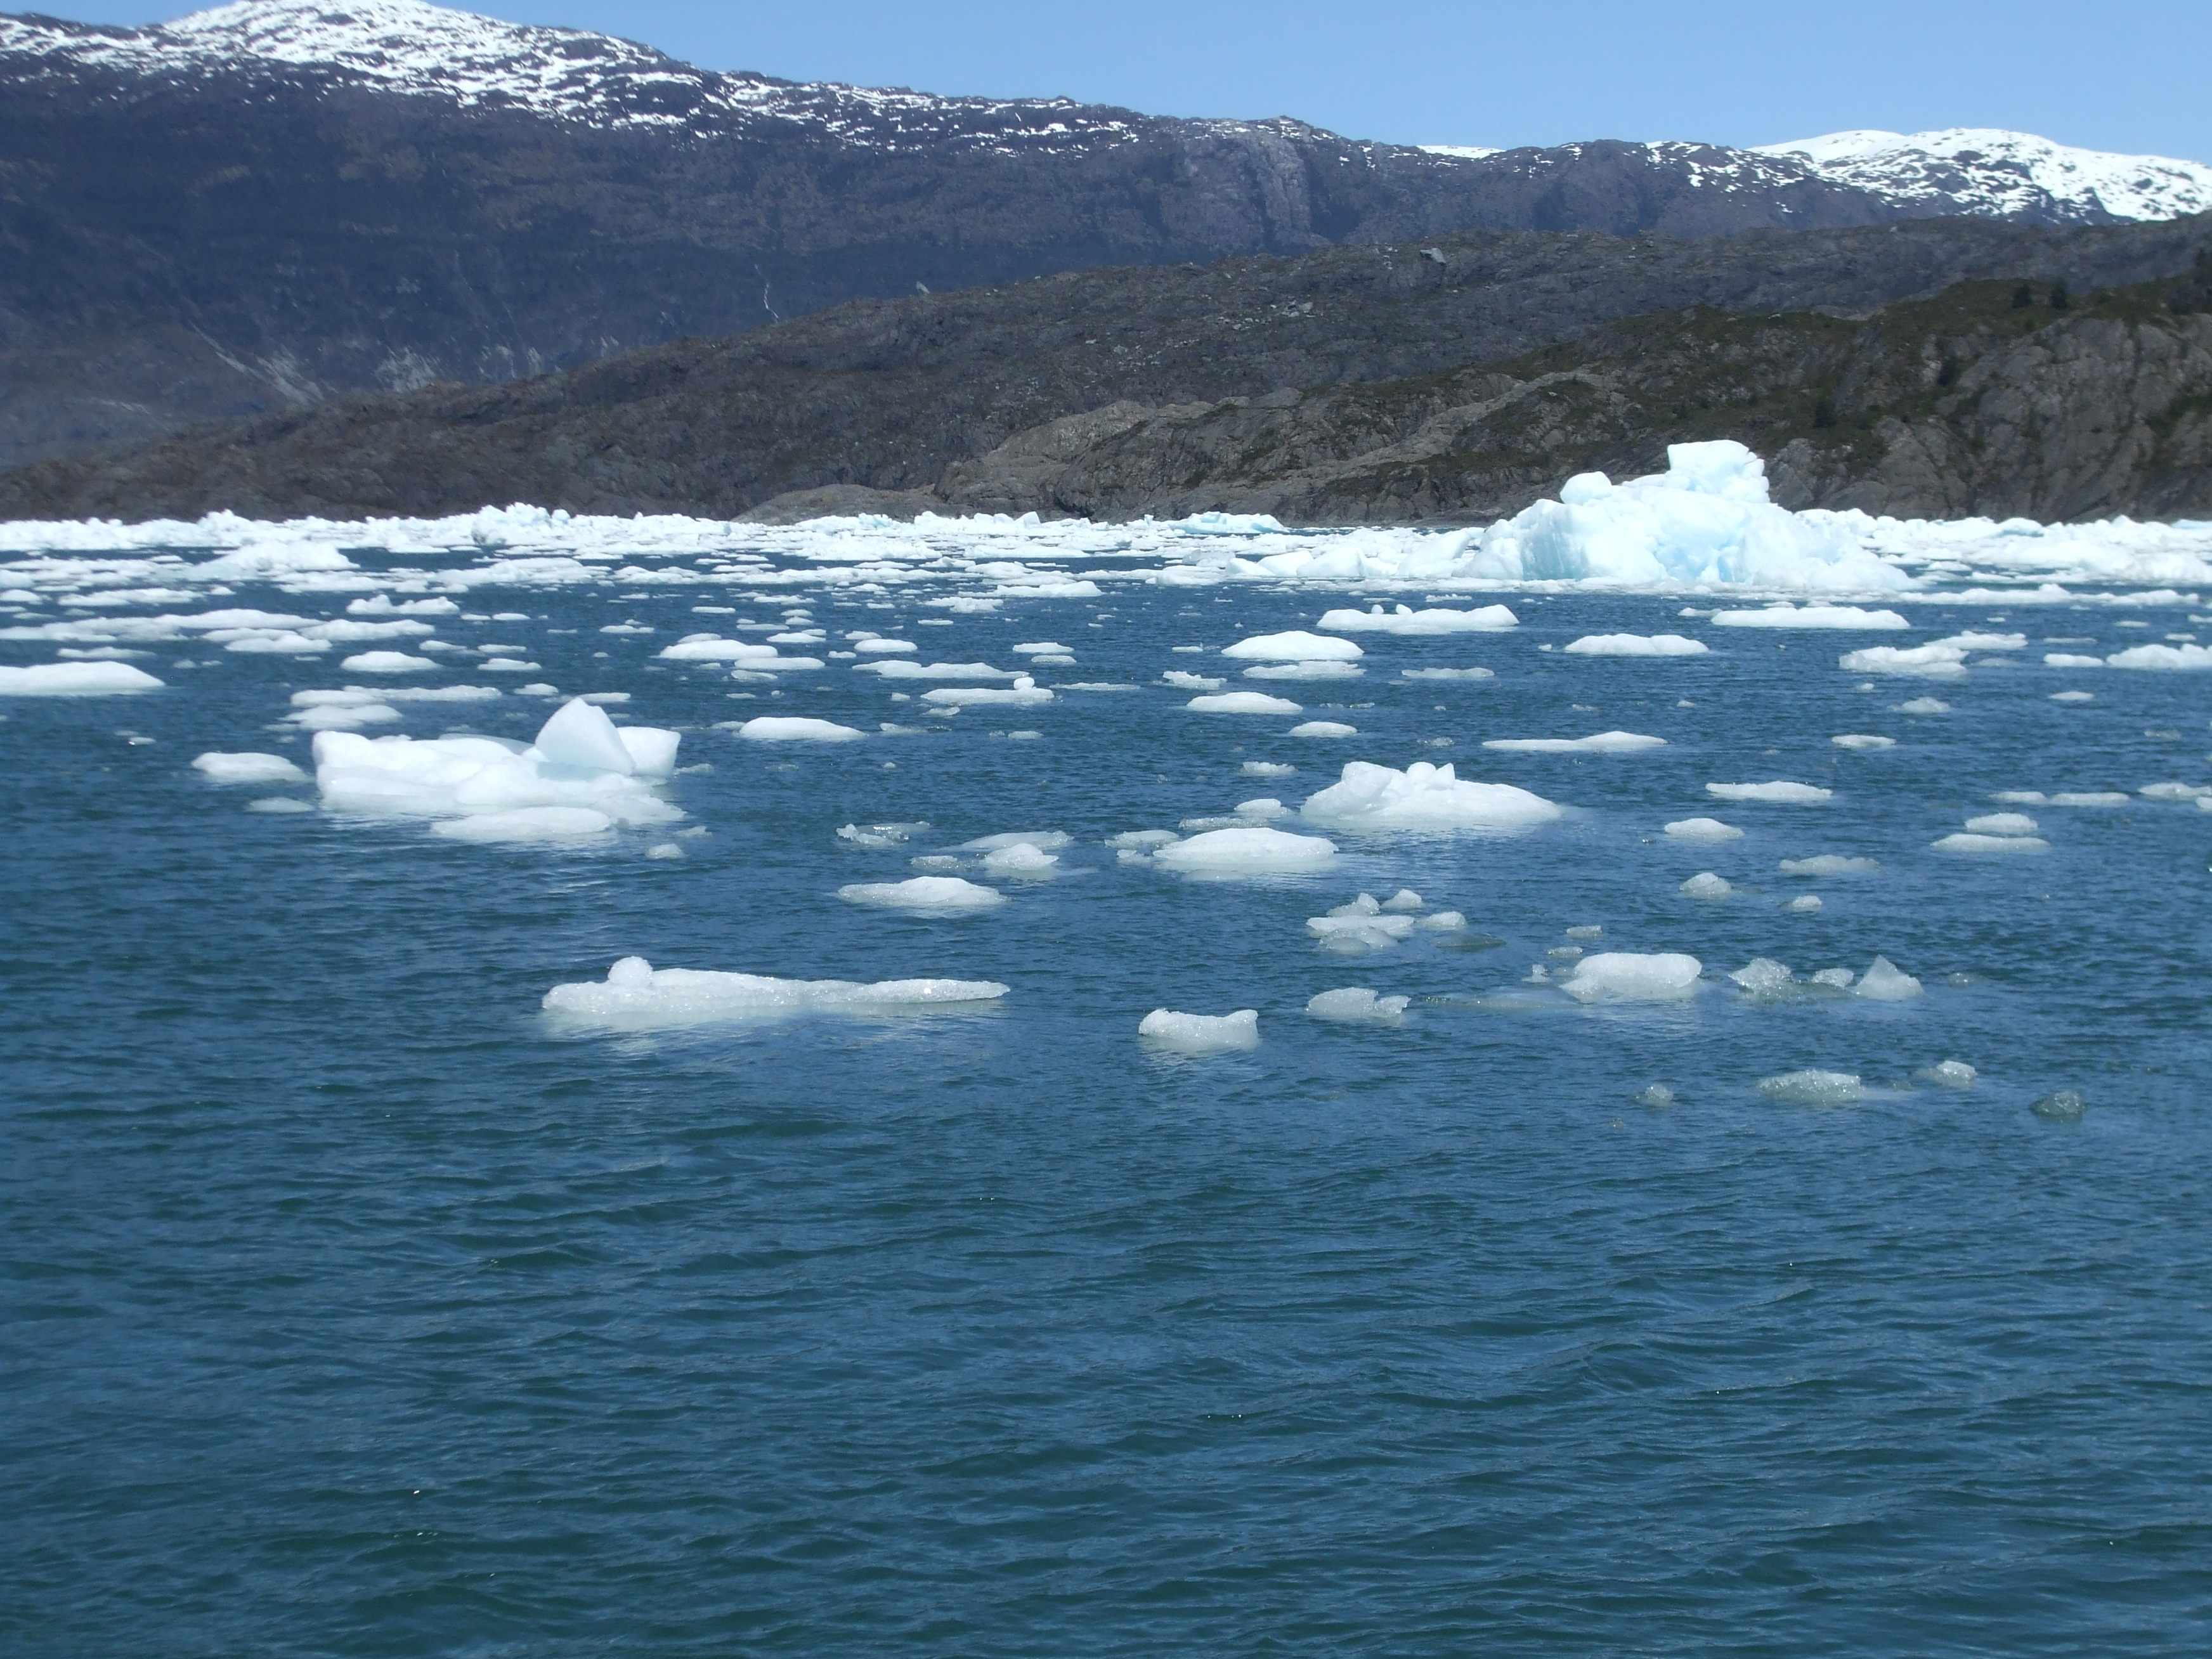 4 Icebergs from the Jorge Montt glacier